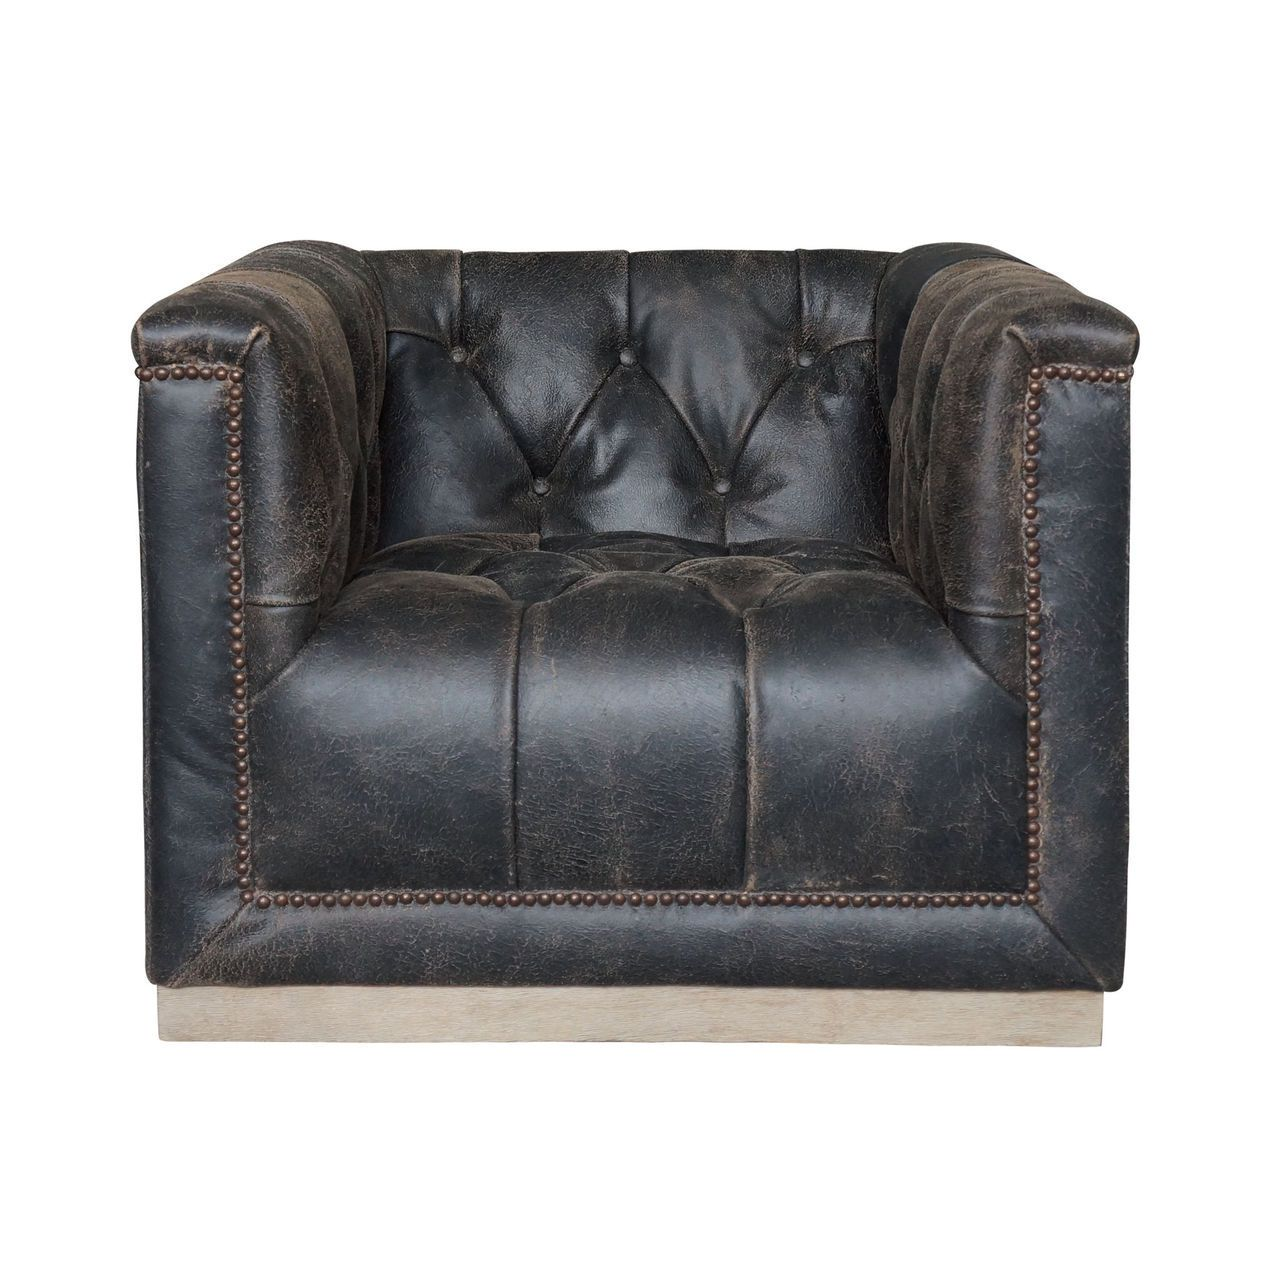 Phenomenal Maxx Distressed Black Leather Swivel Club Chair Club Caraccident5 Cool Chair Designs And Ideas Caraccident5Info